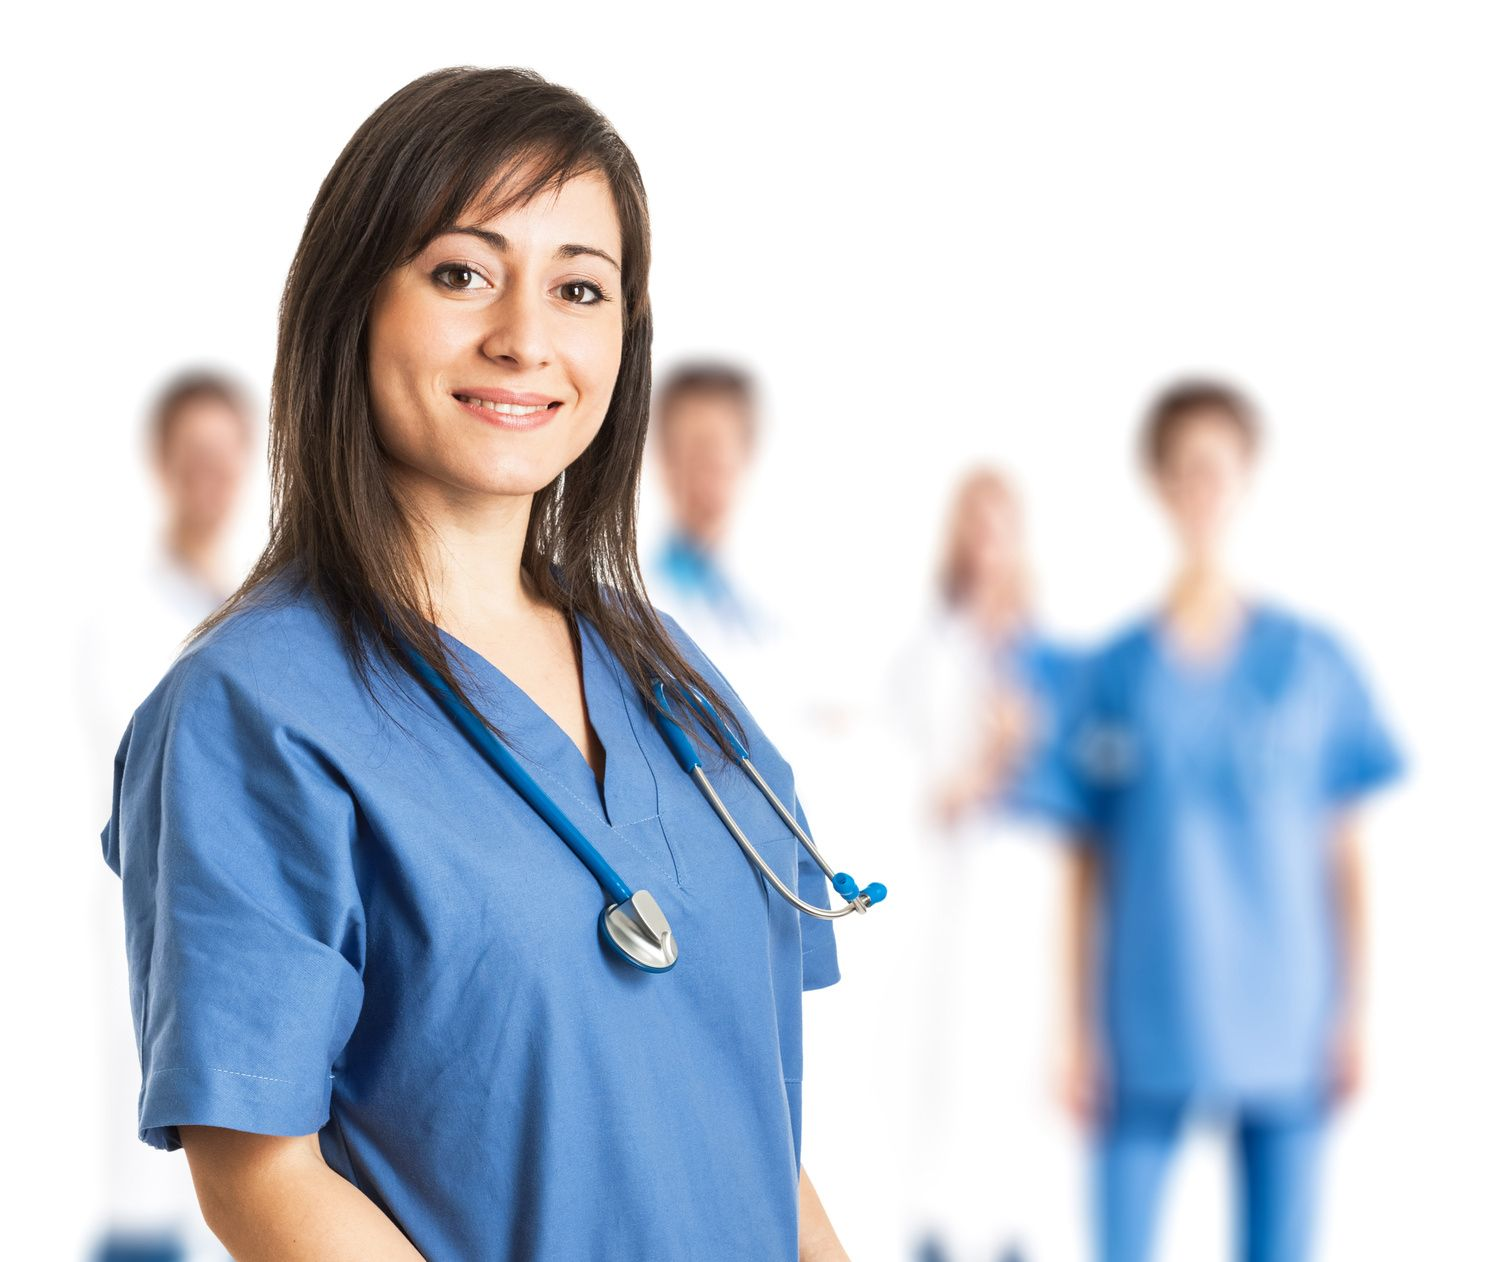 Benefits of Obtaining a Medical Degree